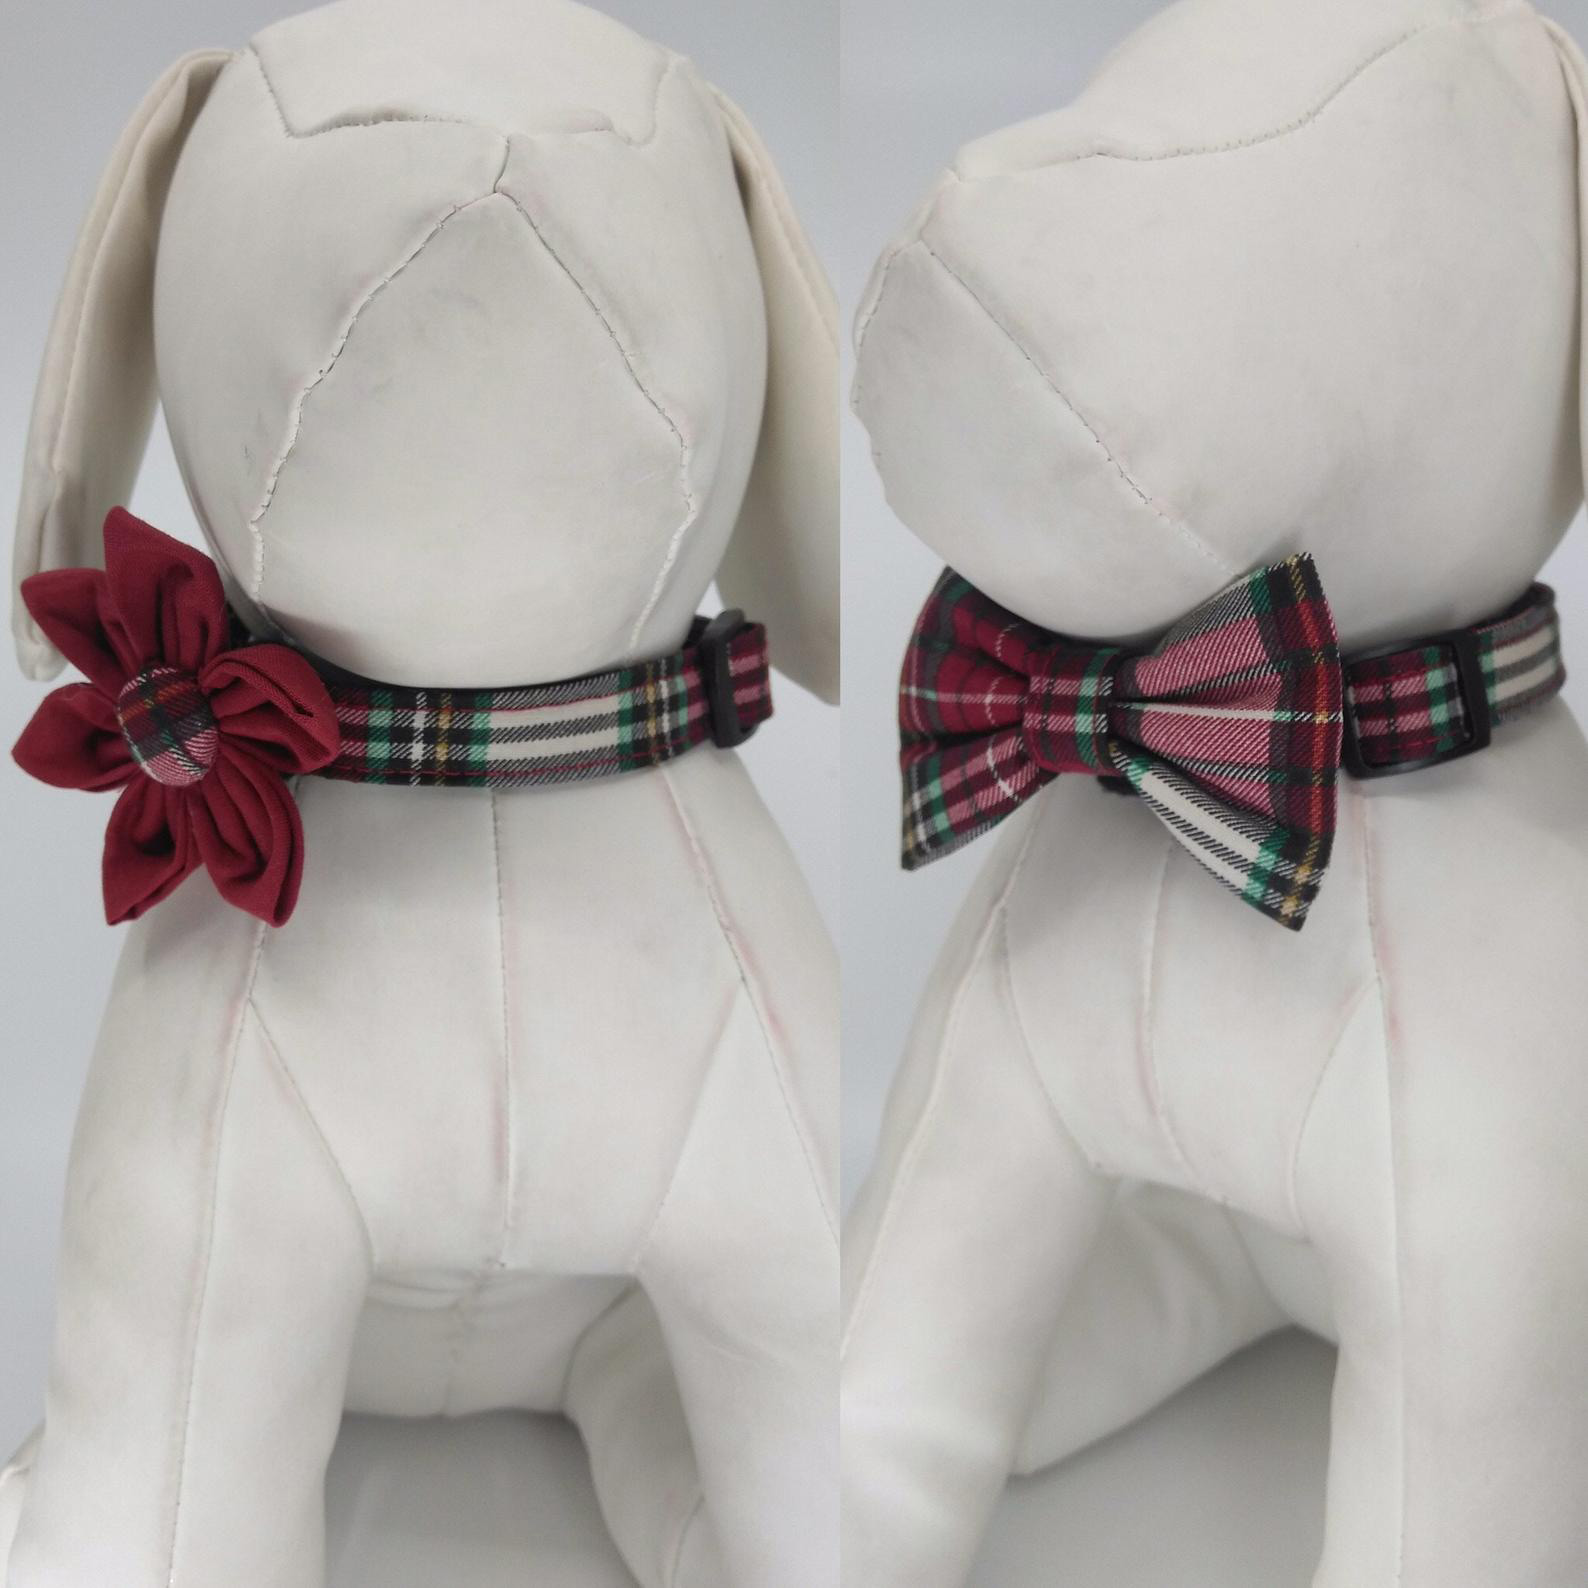 red-and-green-plaid-christmas-dog-collar-with-flower-or-bow-tie